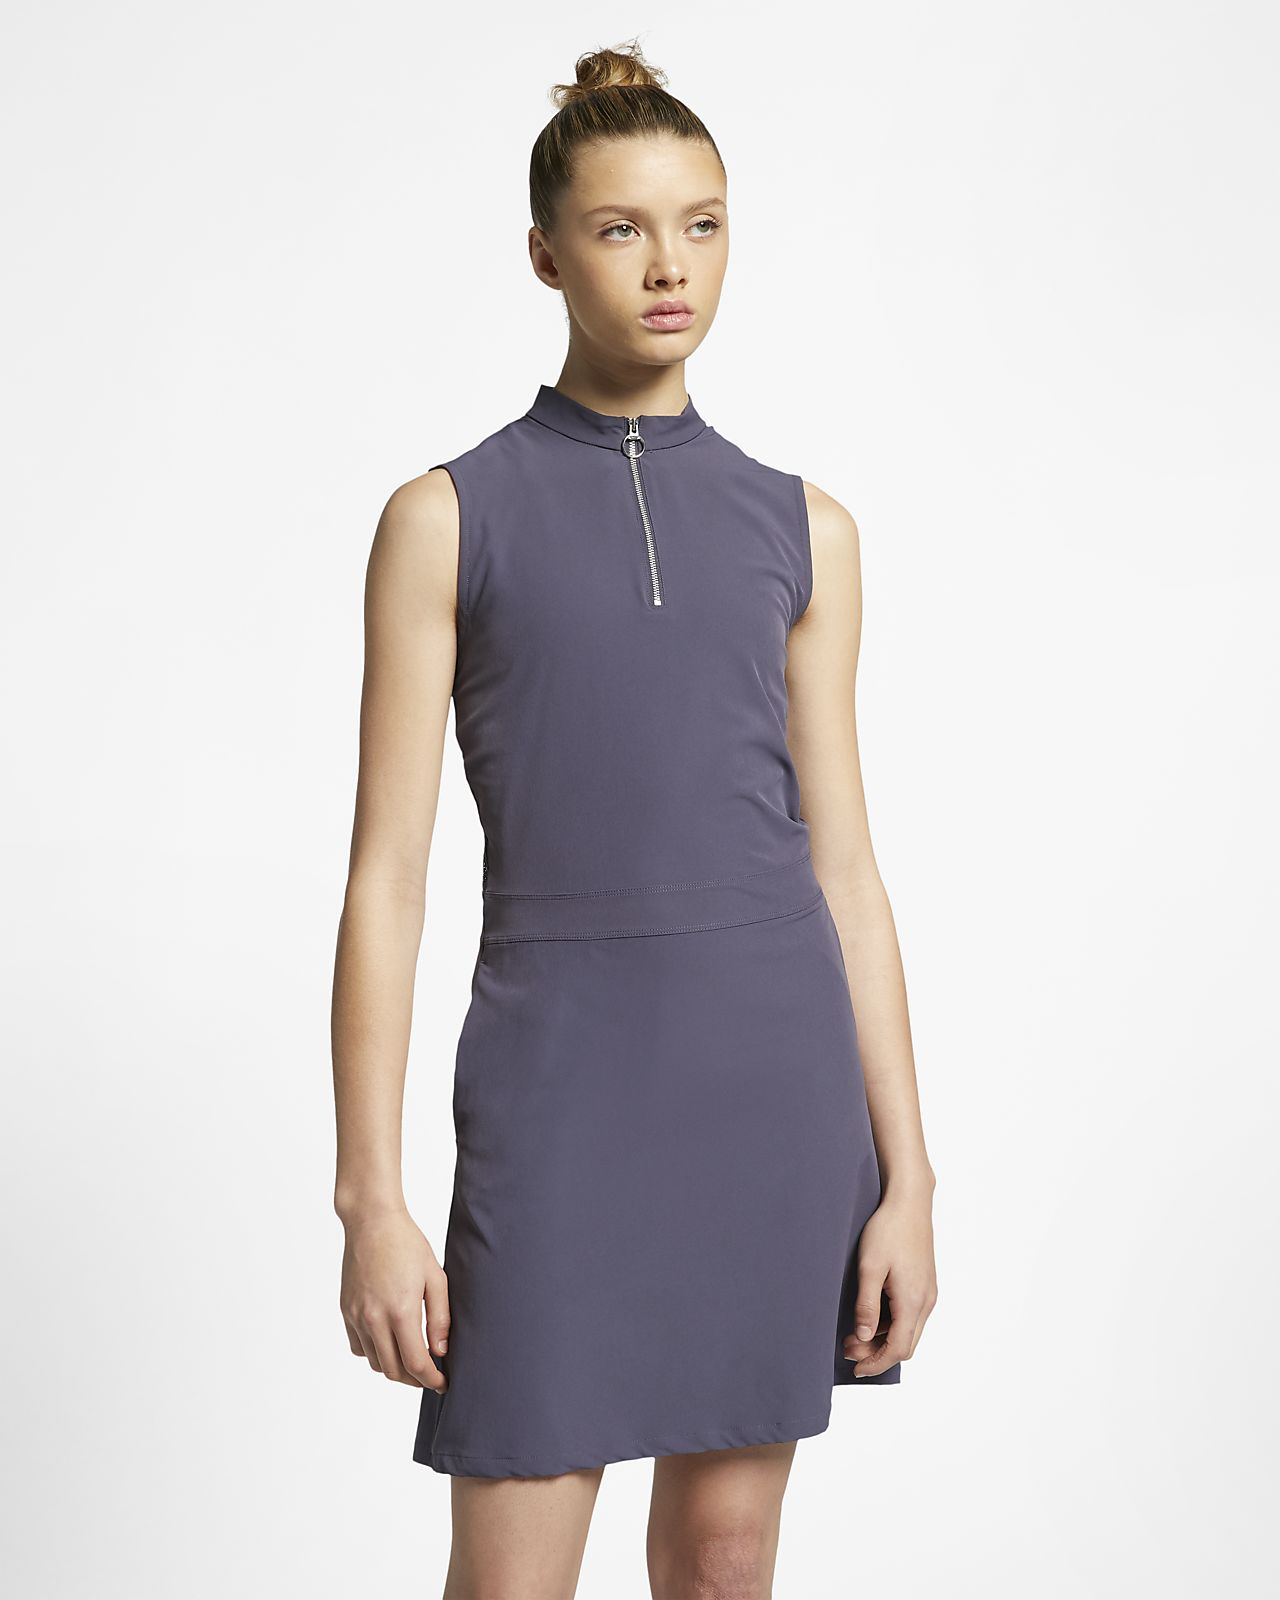 Nike Flex Women's Golf Dress